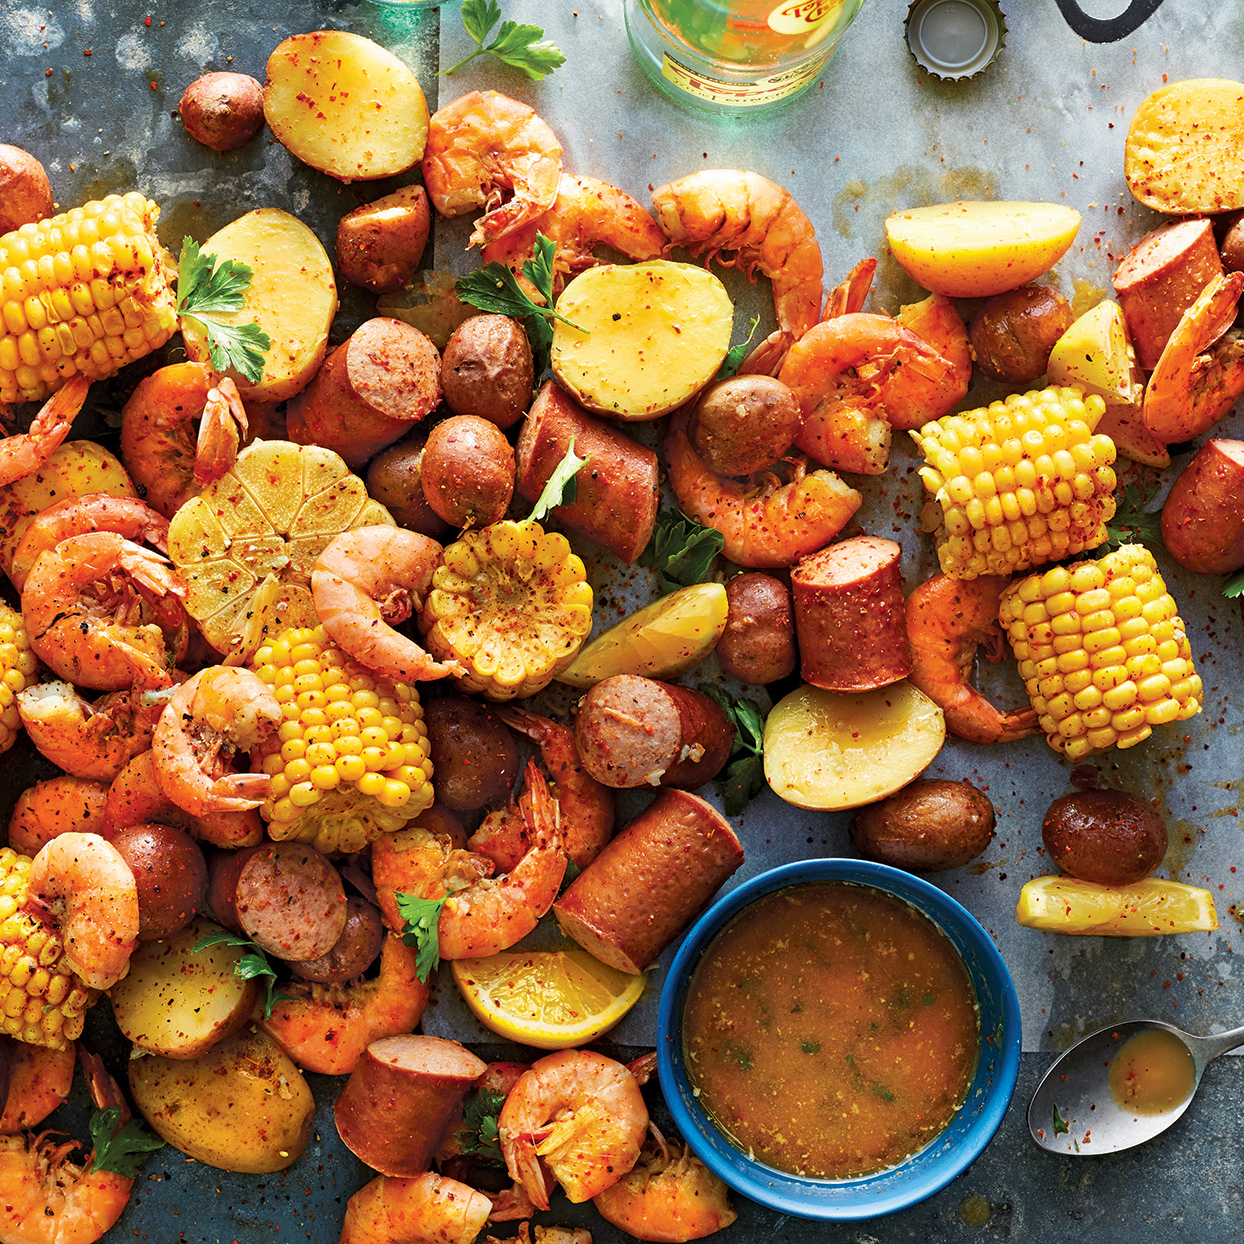 Use your multicooker for a traditional seafood boil dinner that doesn't feel light by any means. The potatoes are perfectly tender, the sausage is cooked and still juicy and flavorful, the corn is tender but not overcooked, and the shrimp are tender and pink. Source: 400 Calorie Recipes